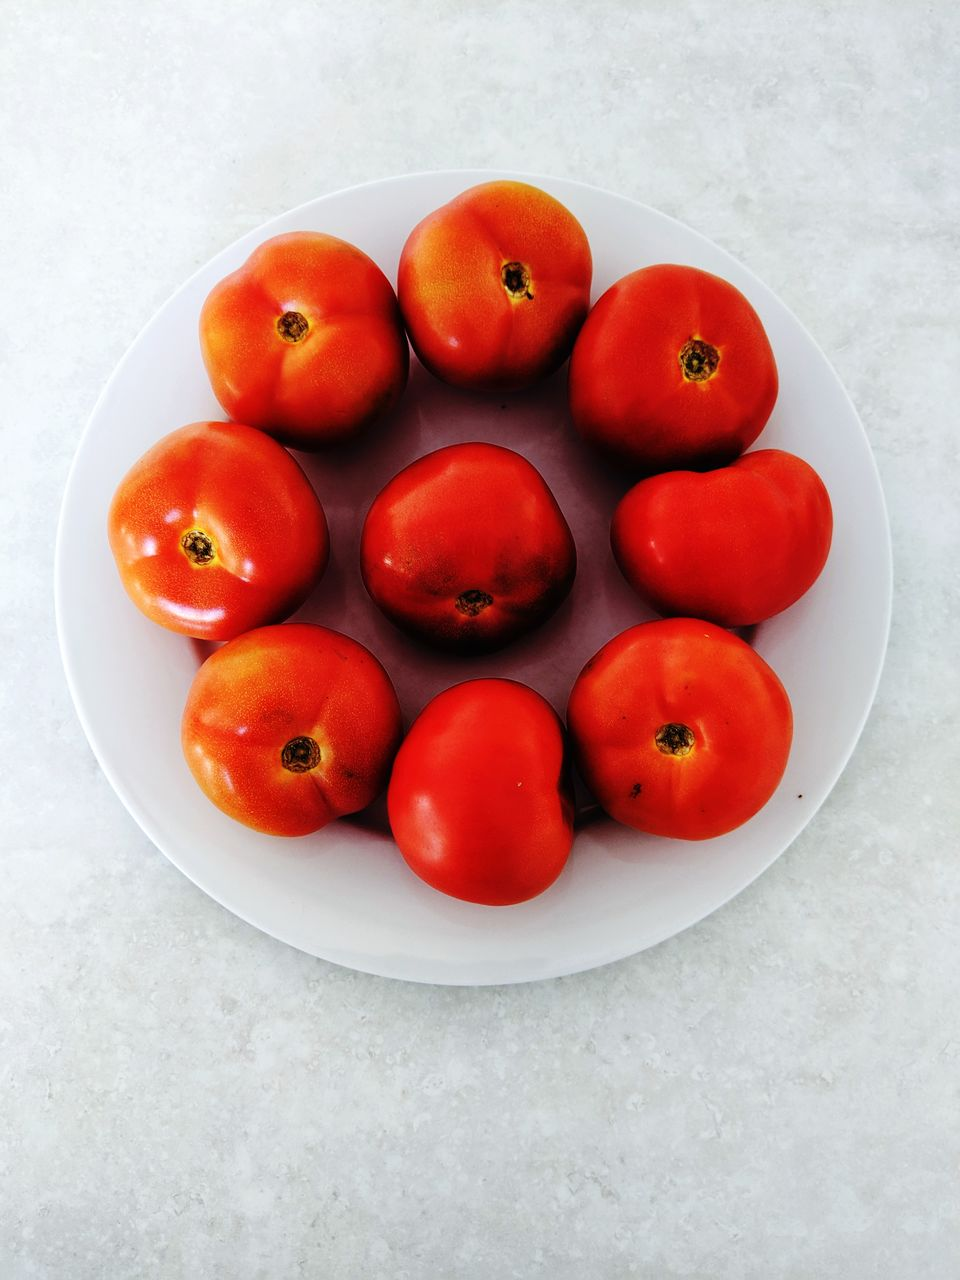 healthy eating, food, wellbeing, fruit, food and drink, vegetable, still life, freshness, tomato, indoors, high angle view, directly above, no people, red, table, close-up, studio shot, group of objects, bowl, plate, ripe, vegetarian food